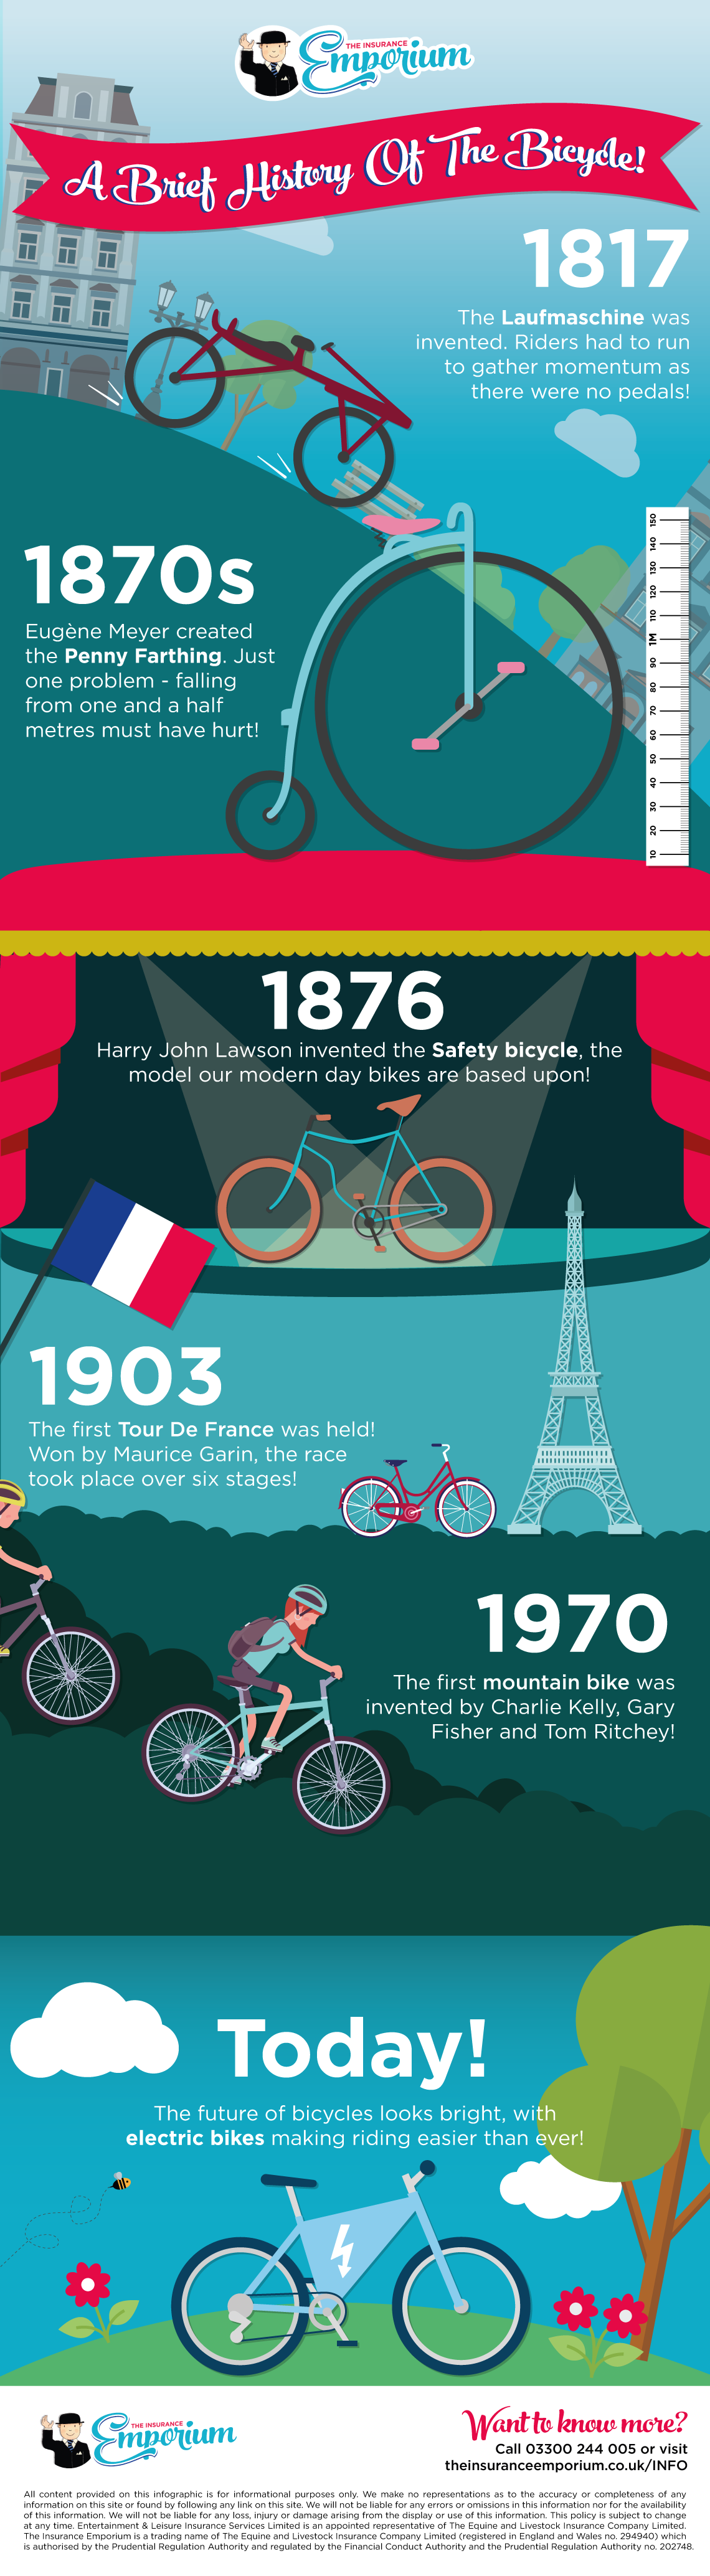 A Brief History of the Bicycle Infographic